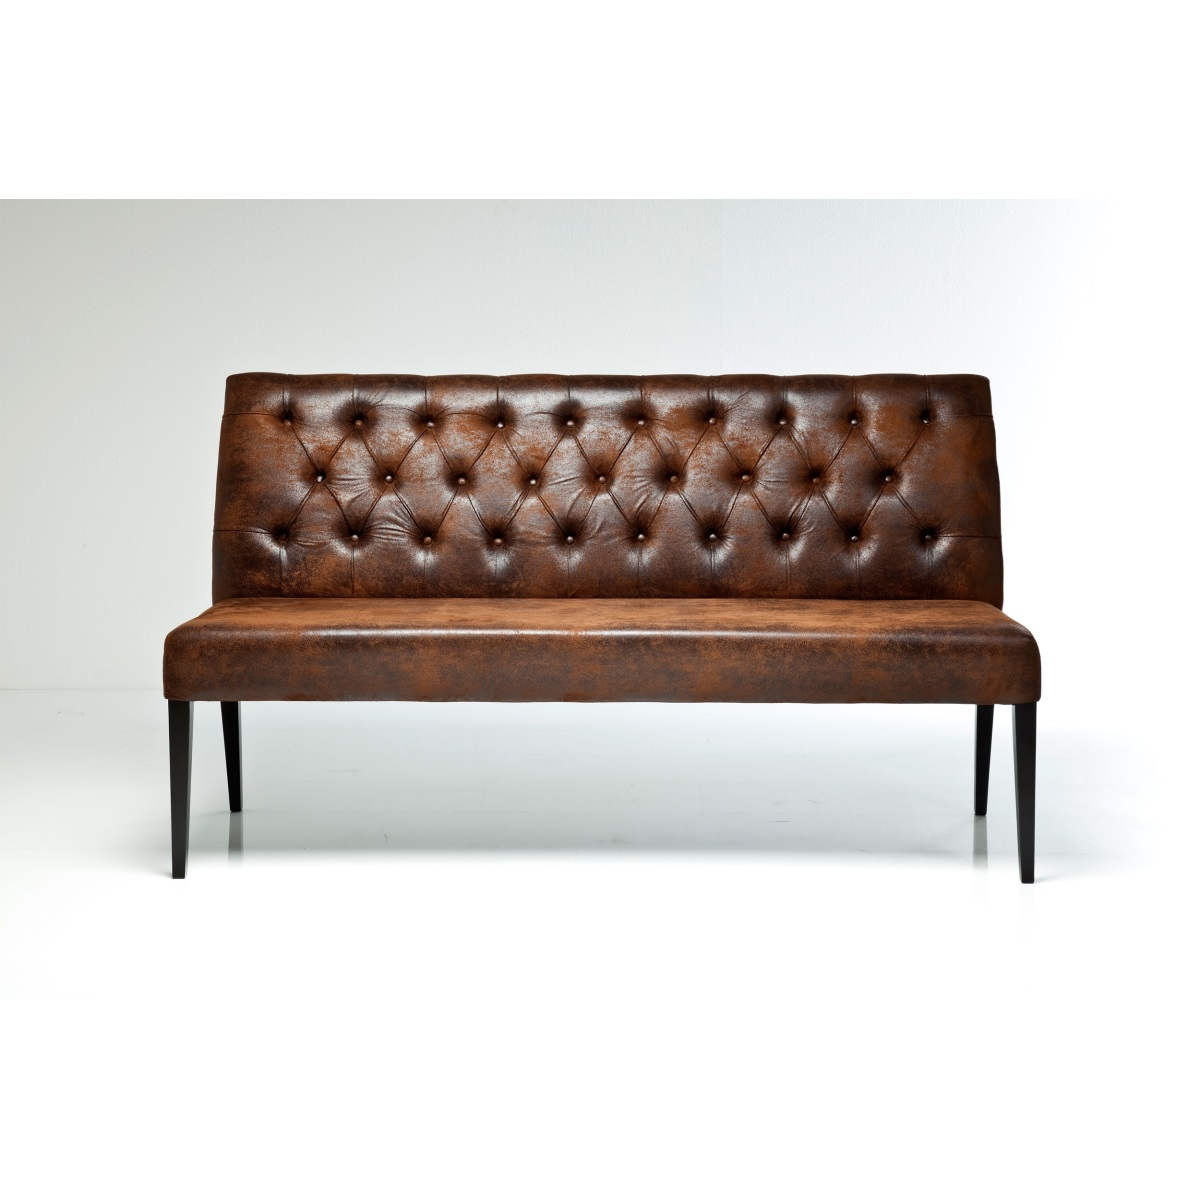 Full Size of Kare Sofa Leder Couch Gianni Design Infinity Dschinn Bed Sale Furniture List Proud Samt Bank Econo Buttons Onlineshop 3 Sitzer U Form Mit Relaxfunktion Sofa Kare Sofa